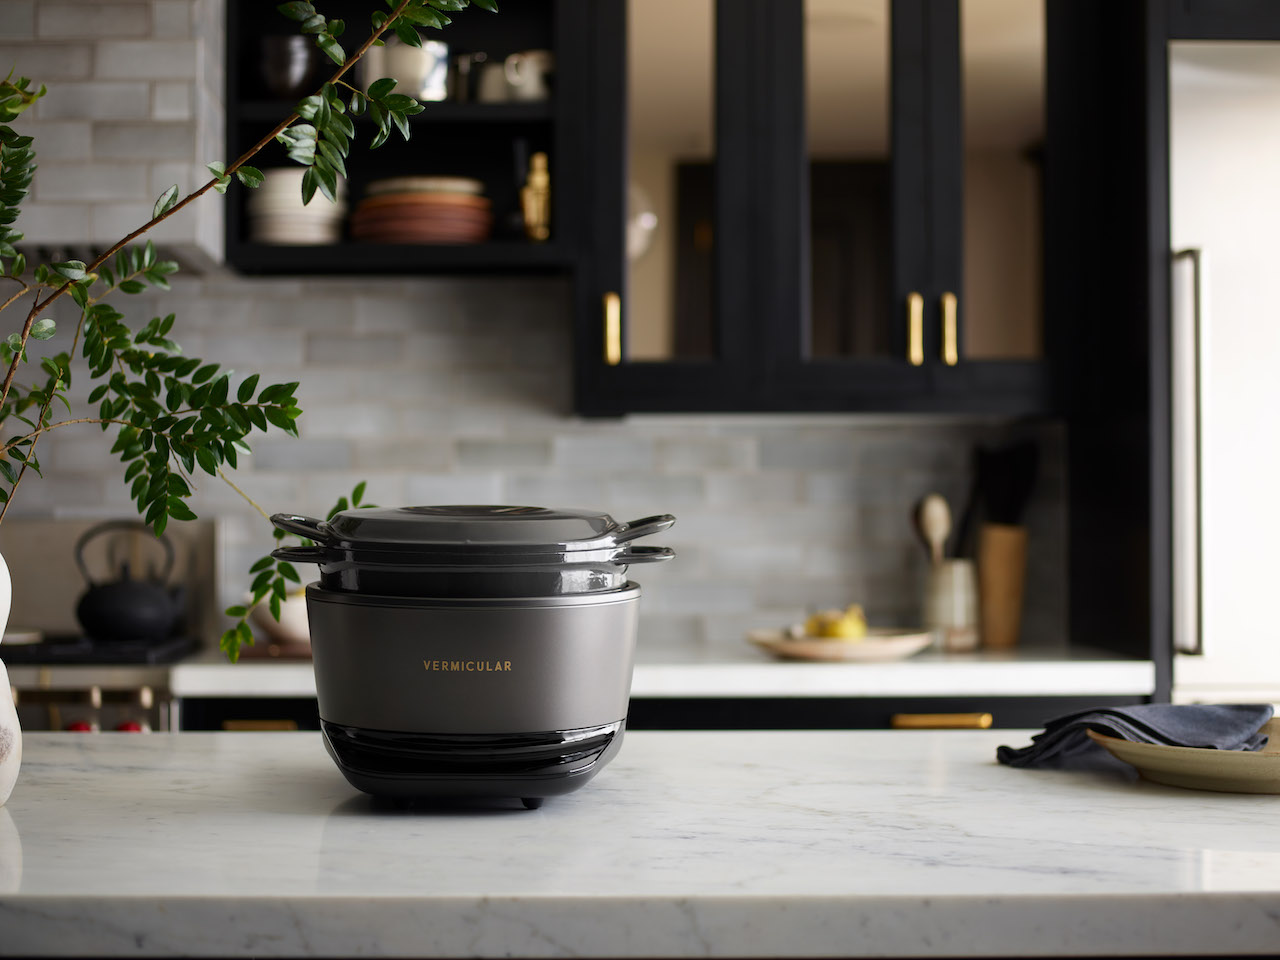 Vermicular's Japanese Heritage Has Transformed Cast Iron Cookware